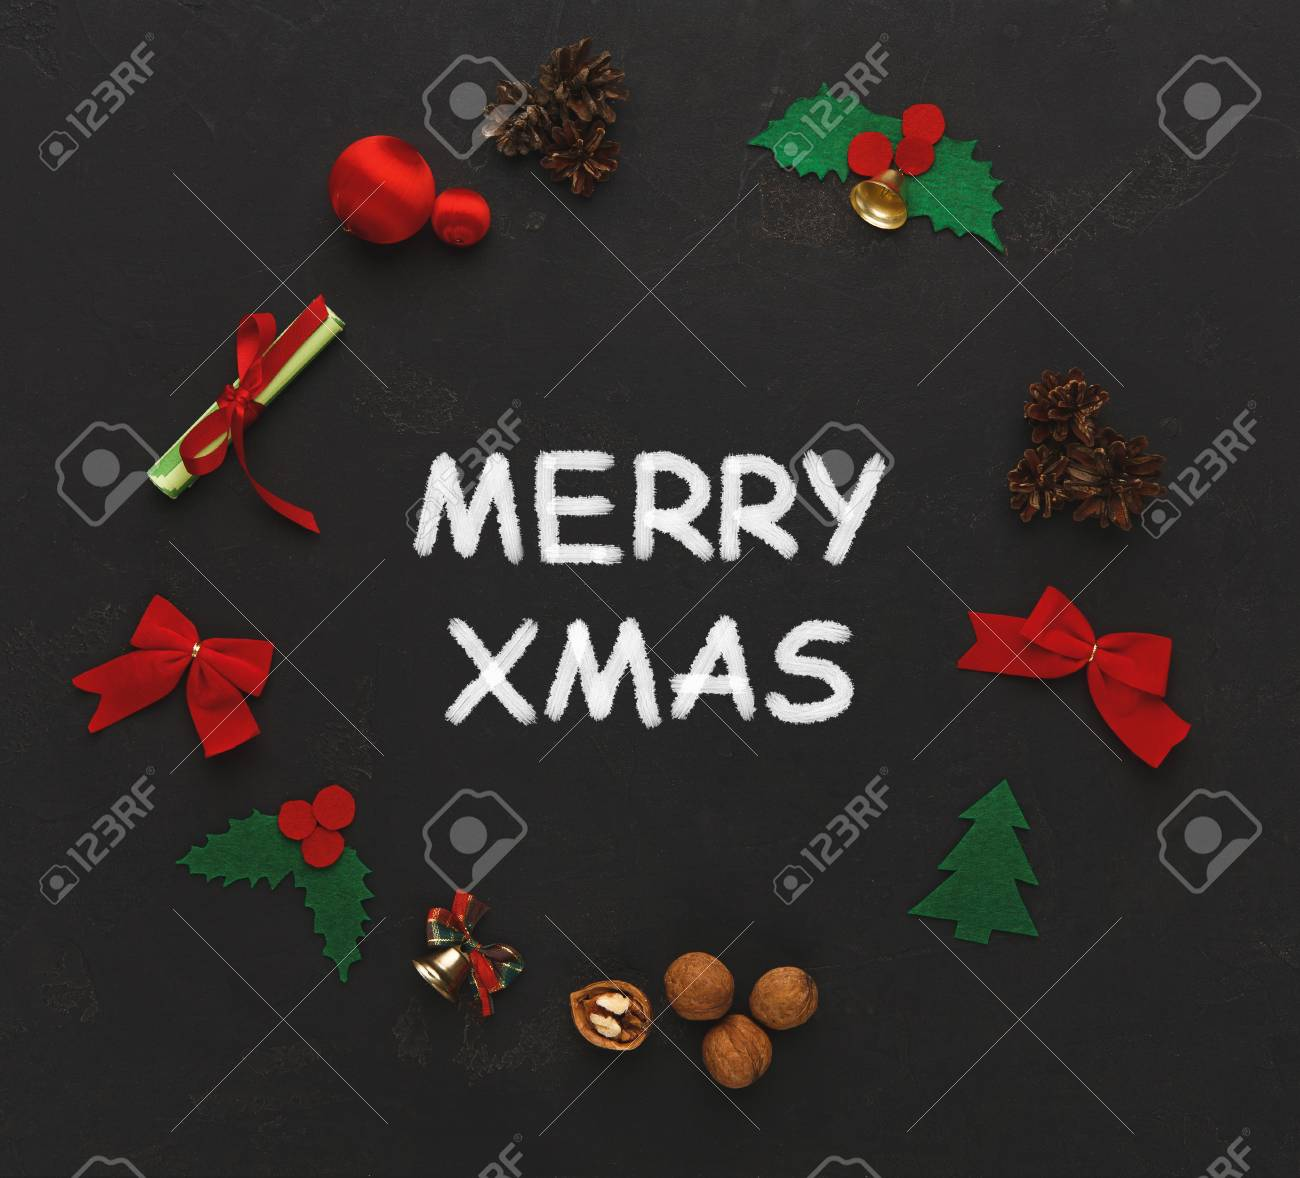 Merry Xmas Greeting Decoration Background Top View On Christmas